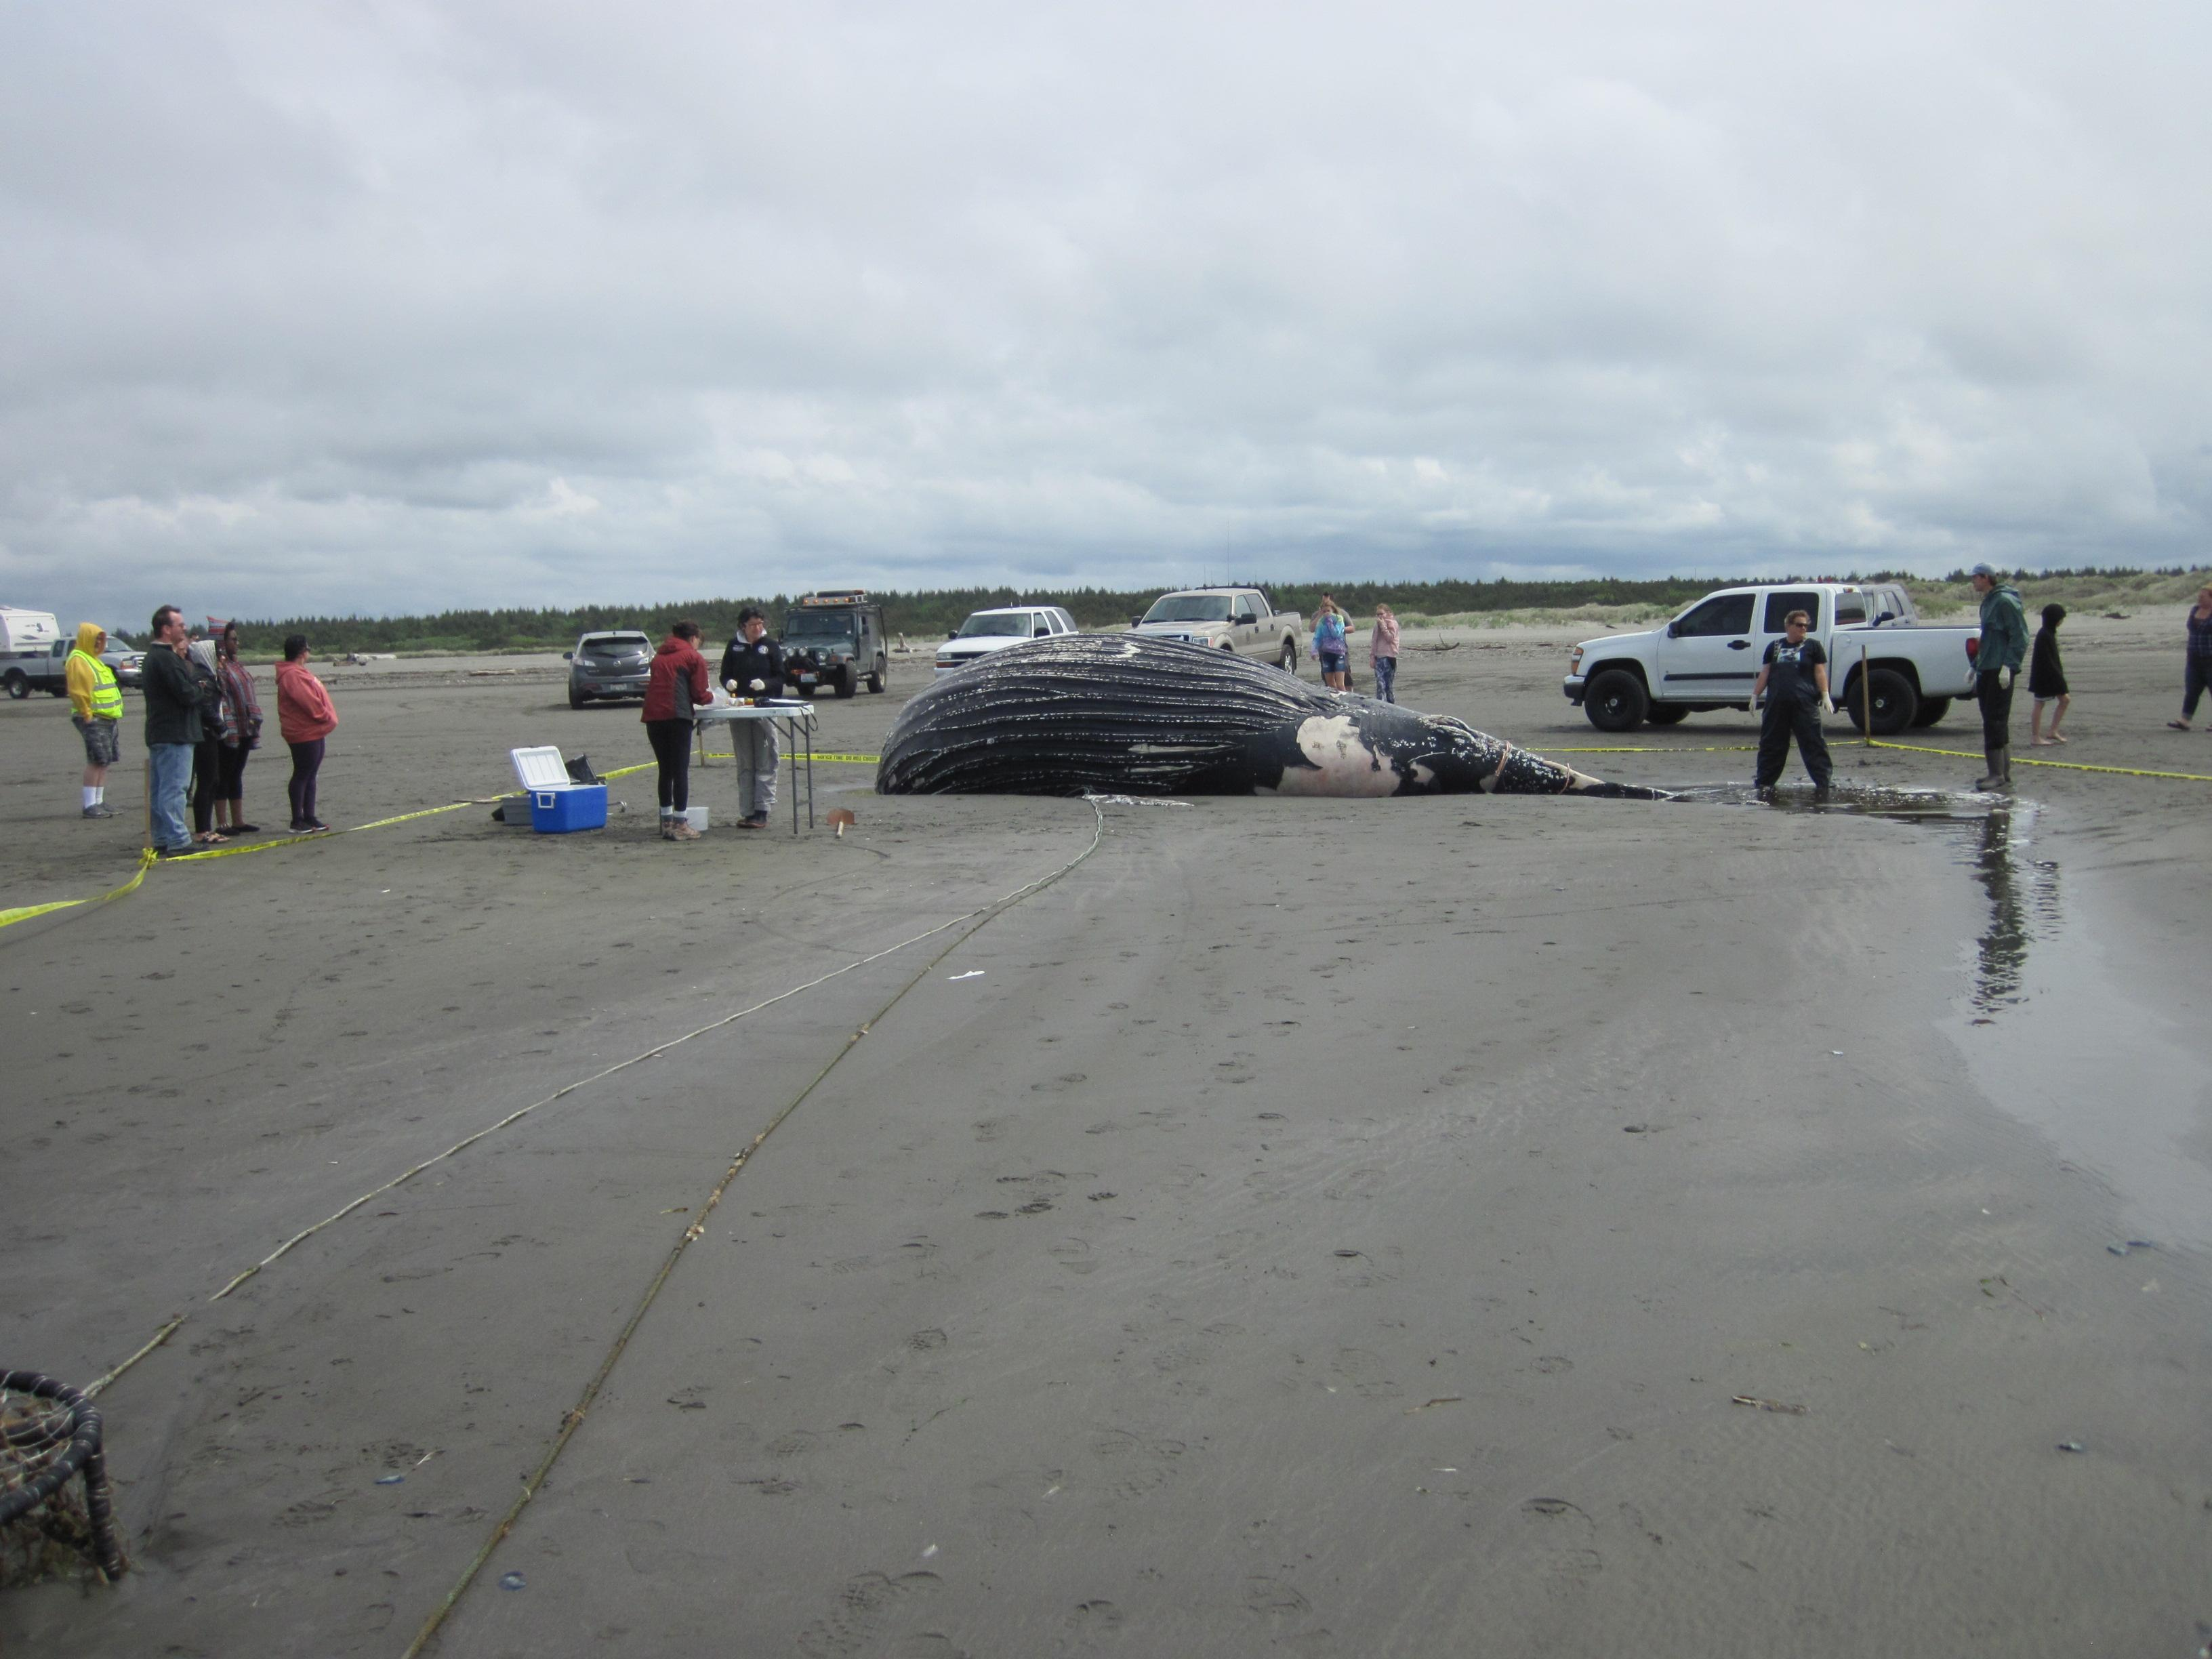 A{ } dead humpback whale washed ashore at Ocean Shores, Wash., on Sunday, May 20, 2018. (Photo: Cascadia Research)